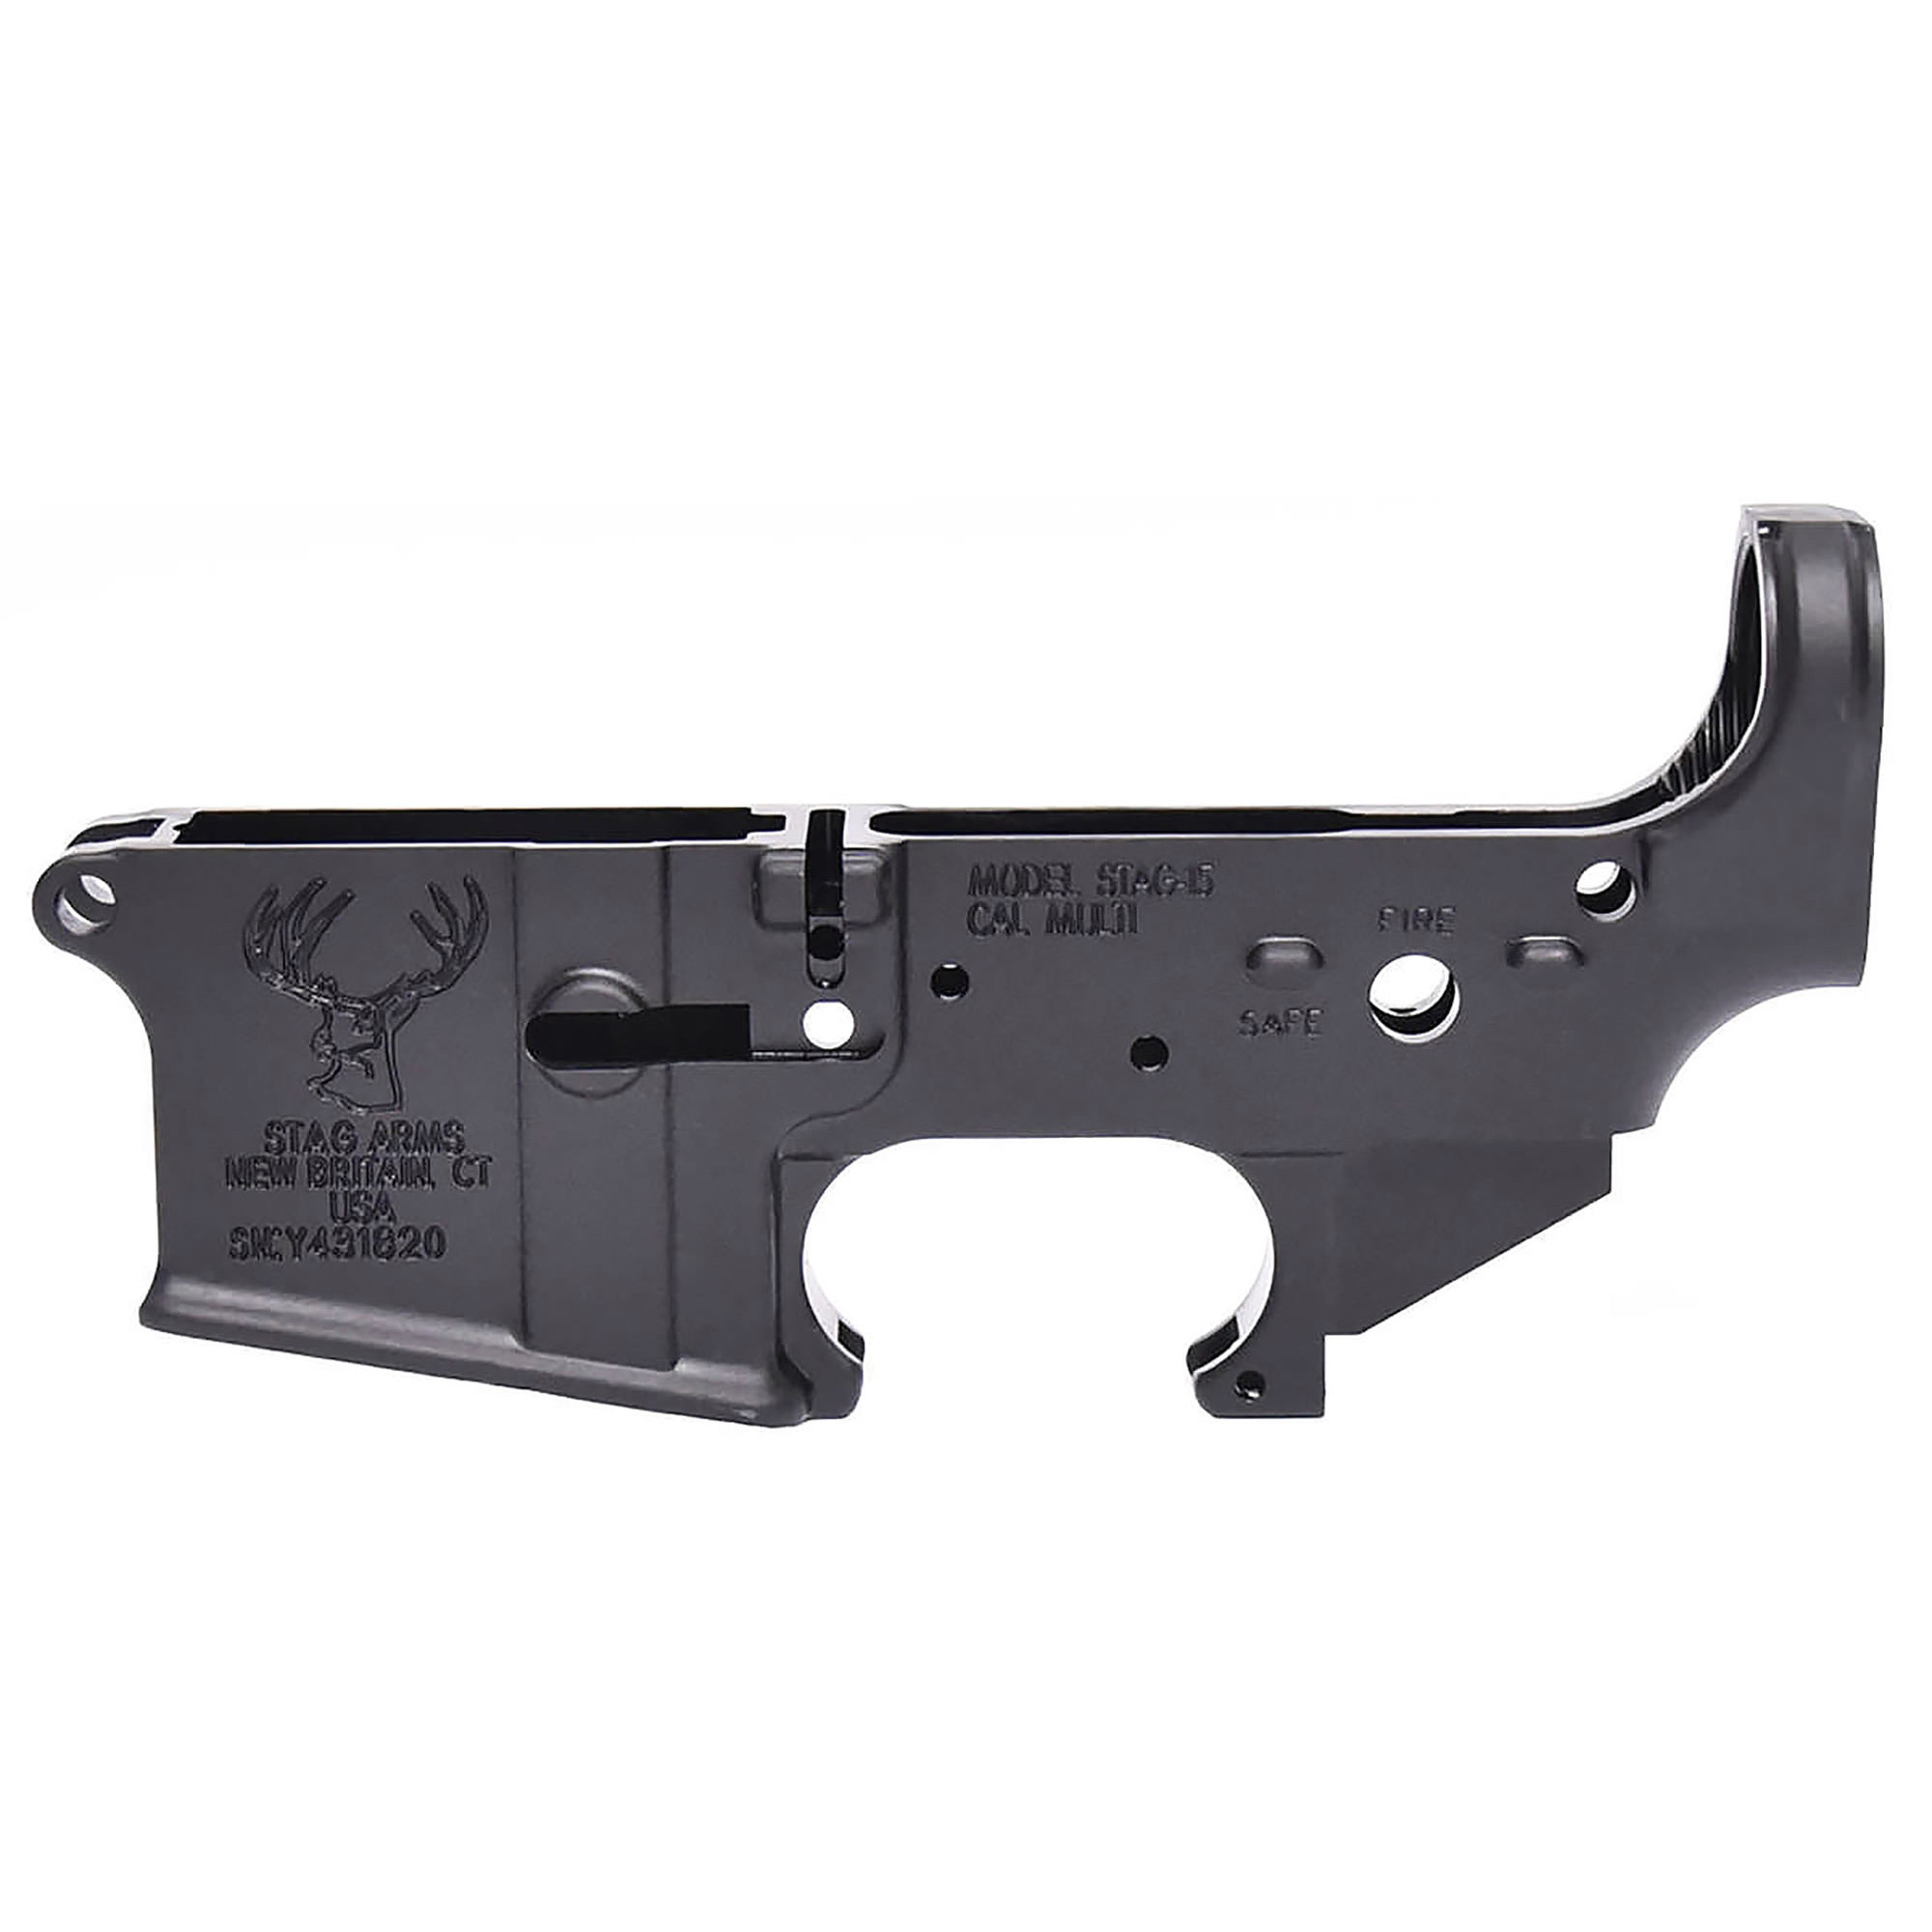 "Made to Mil-Spec standards"" the Stag stripped lower receiver is second to none in quality and works with Mil-Spec AR15 parts & components."